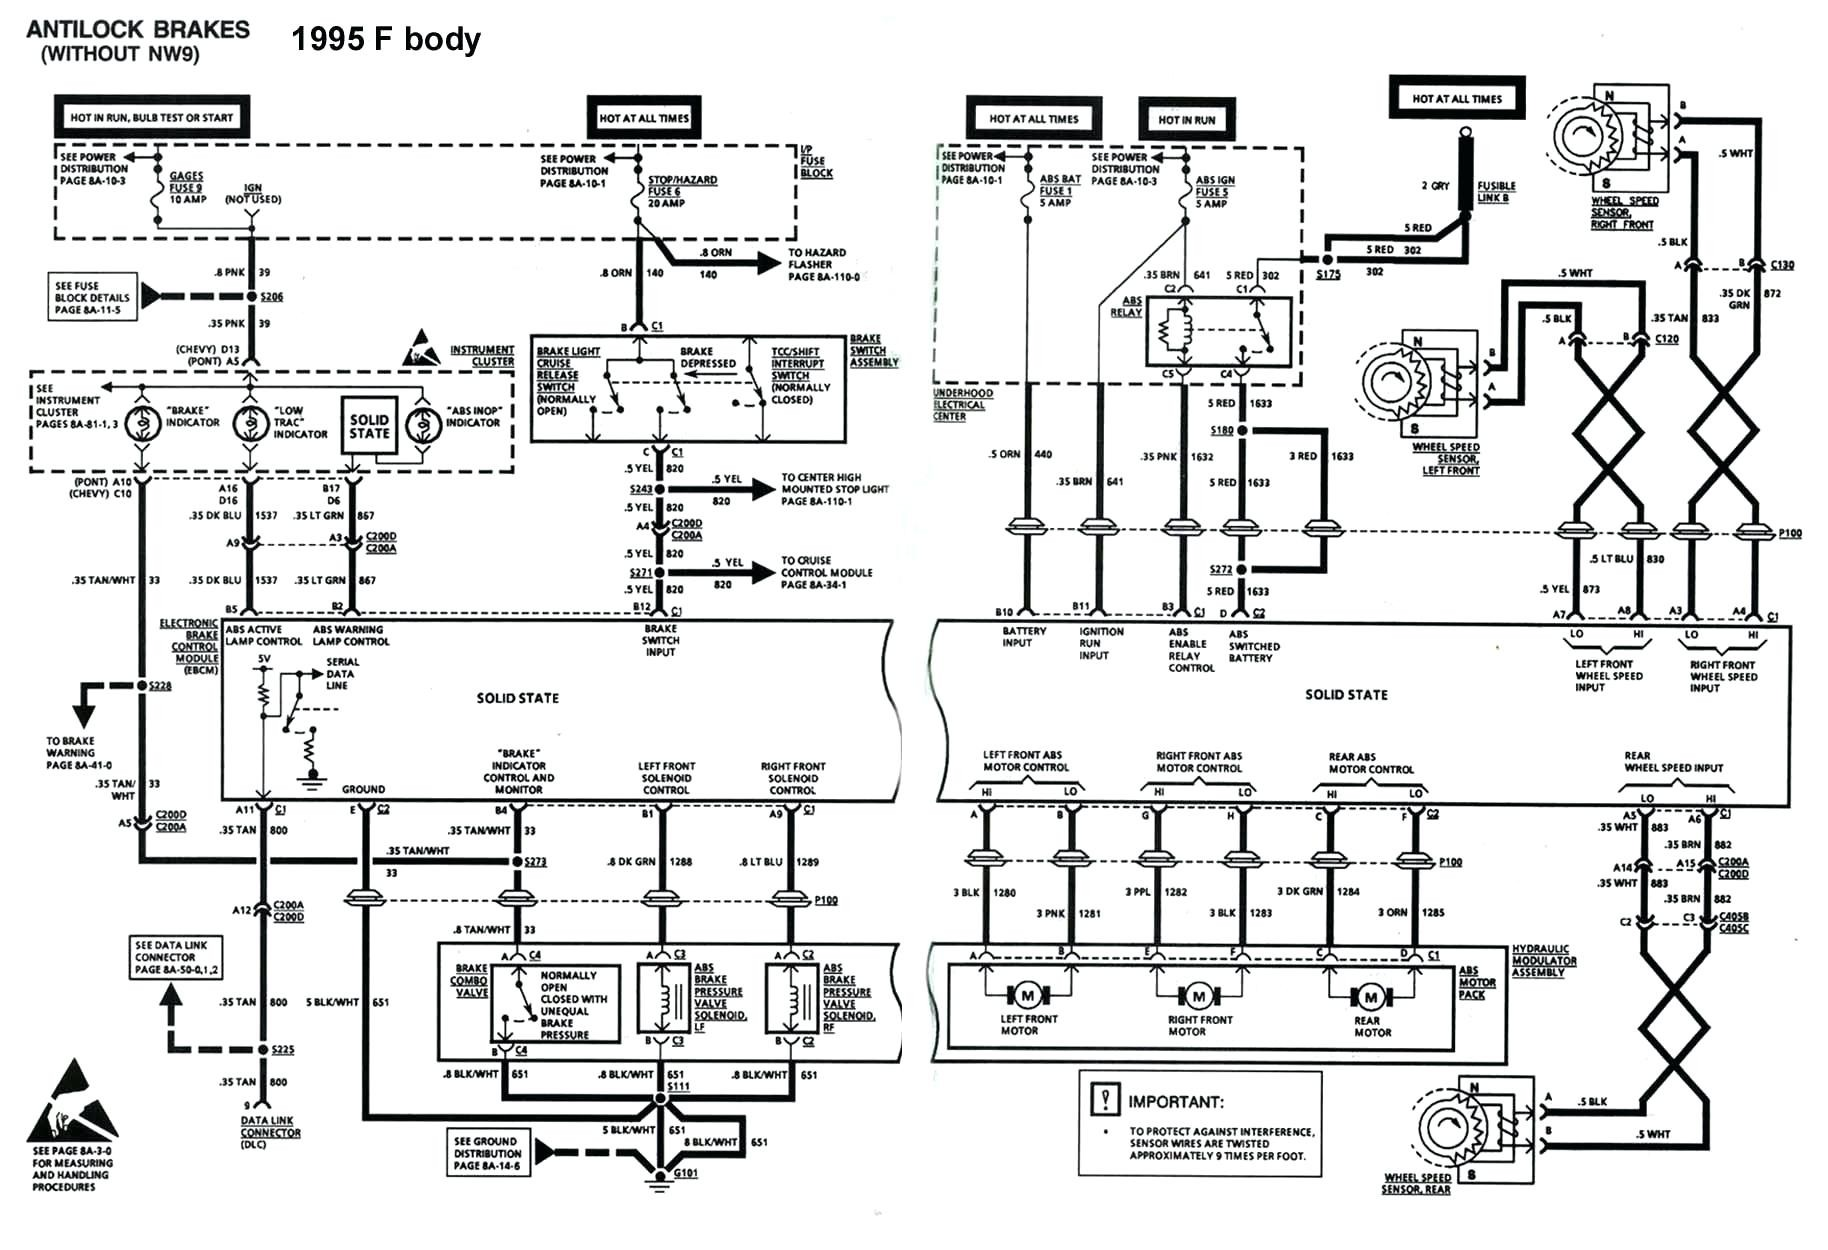 Abs Brake System Diagram Circuit Diagram Maker Arduino Gen F Body Tech Aids 2004 Saturn Ion Of Abs Brake System Diagram